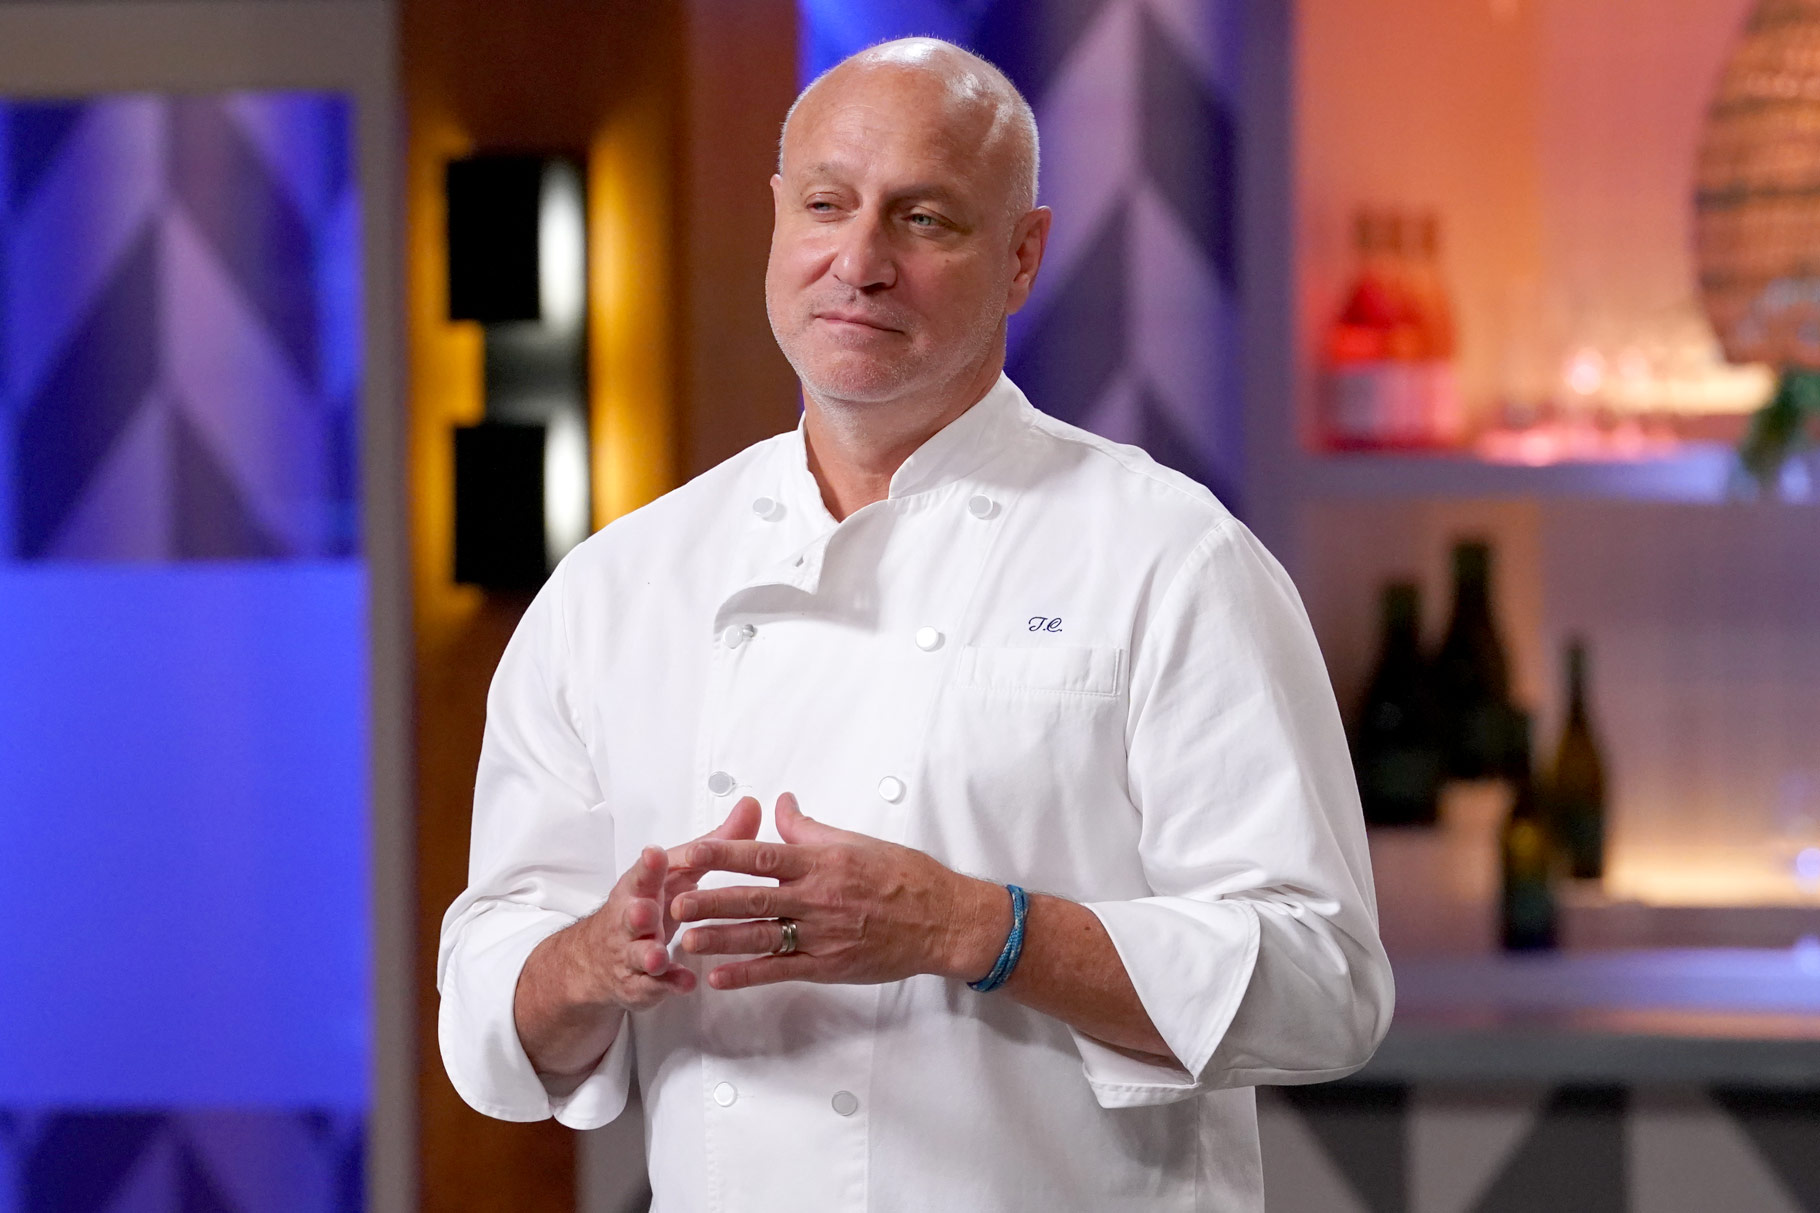 Tom Colicchio Lck Chicken Competition